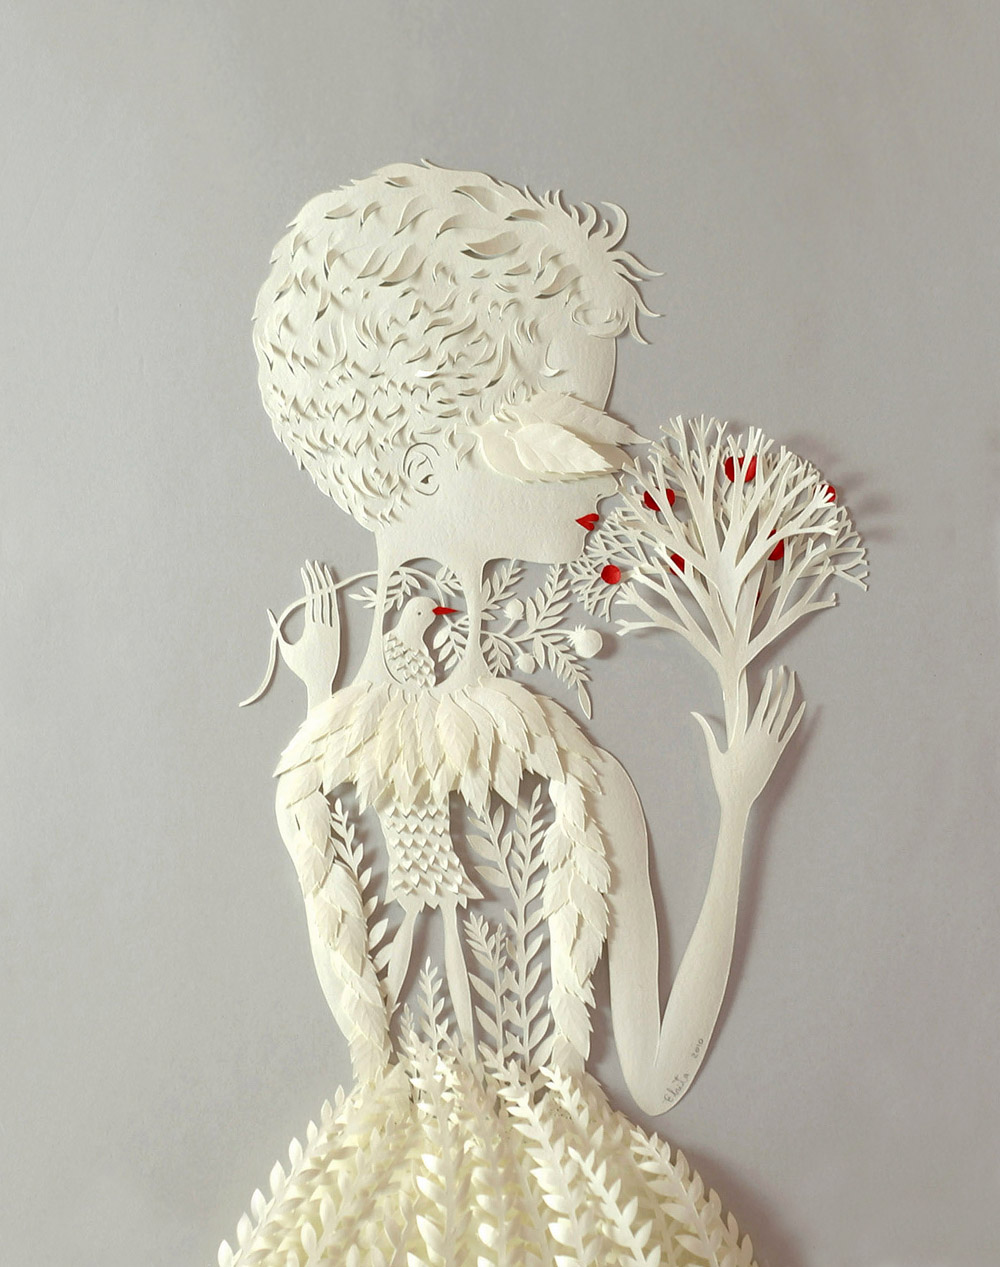 Por Dentro. Paper Sculpture by Elsa Mora